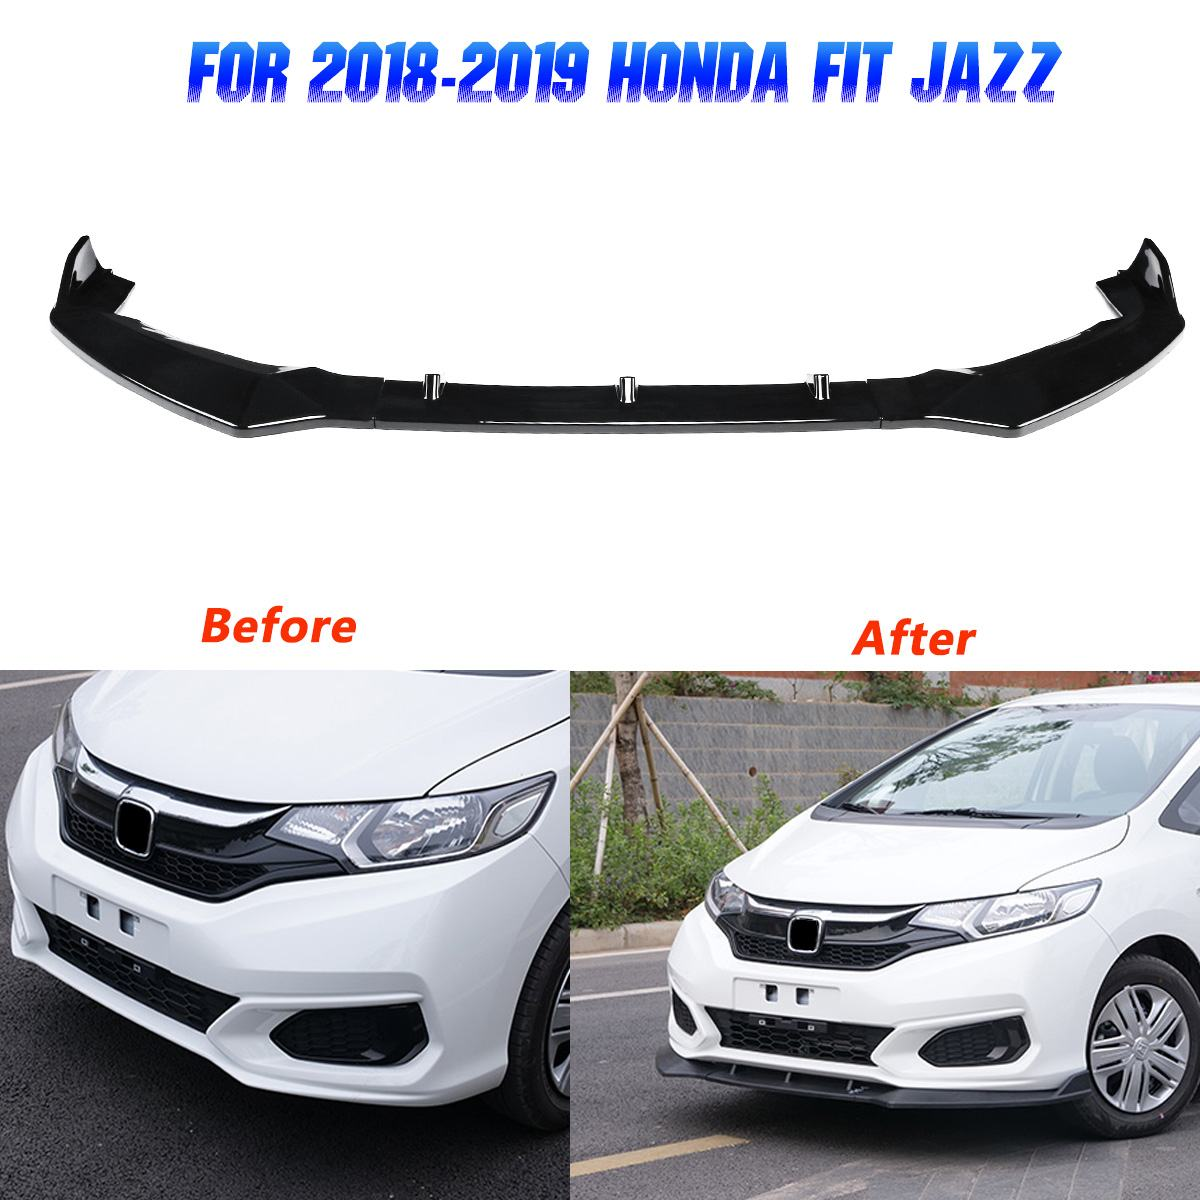 1Set Front Bumper Lip Cover for Honda FIT JAZZ 2018 2019 Gloss Black Scratchproof Exterior Parts ABS Bumpers Trim